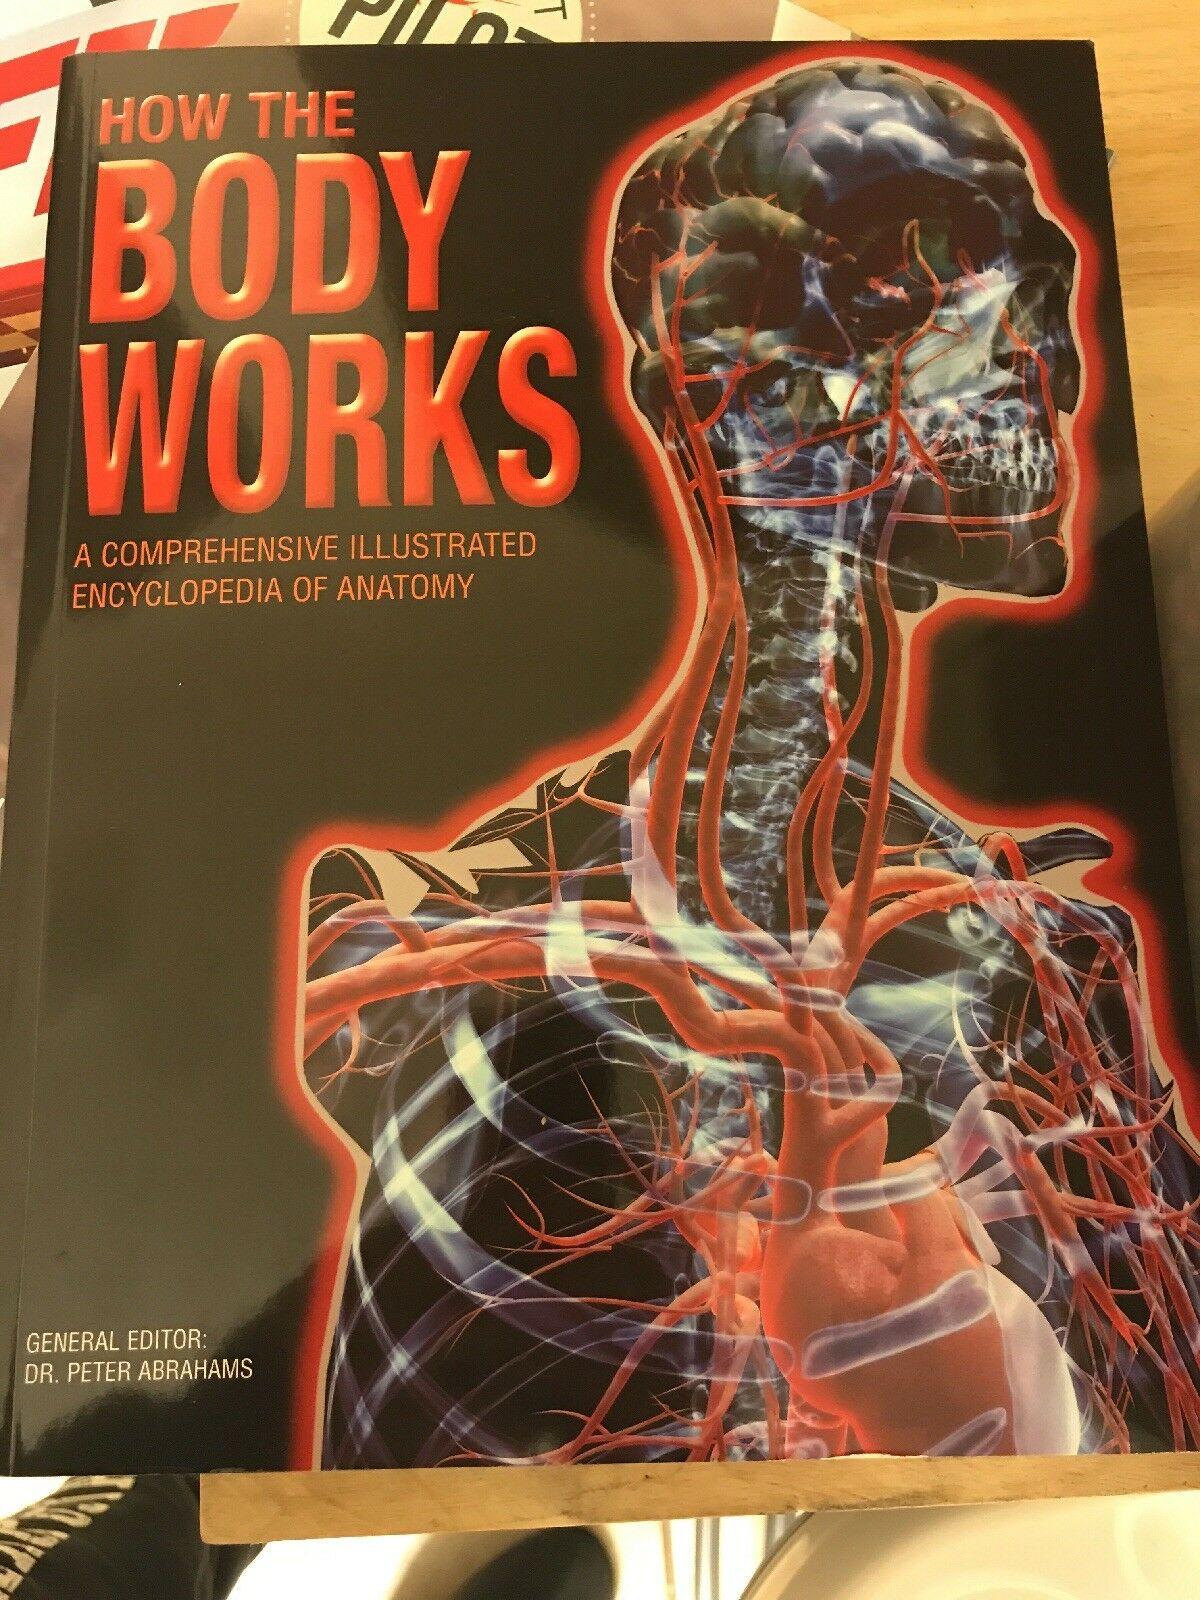 How The Body Works Encyclopedia of Anatomy by Dr Peter Abrahams | eBay